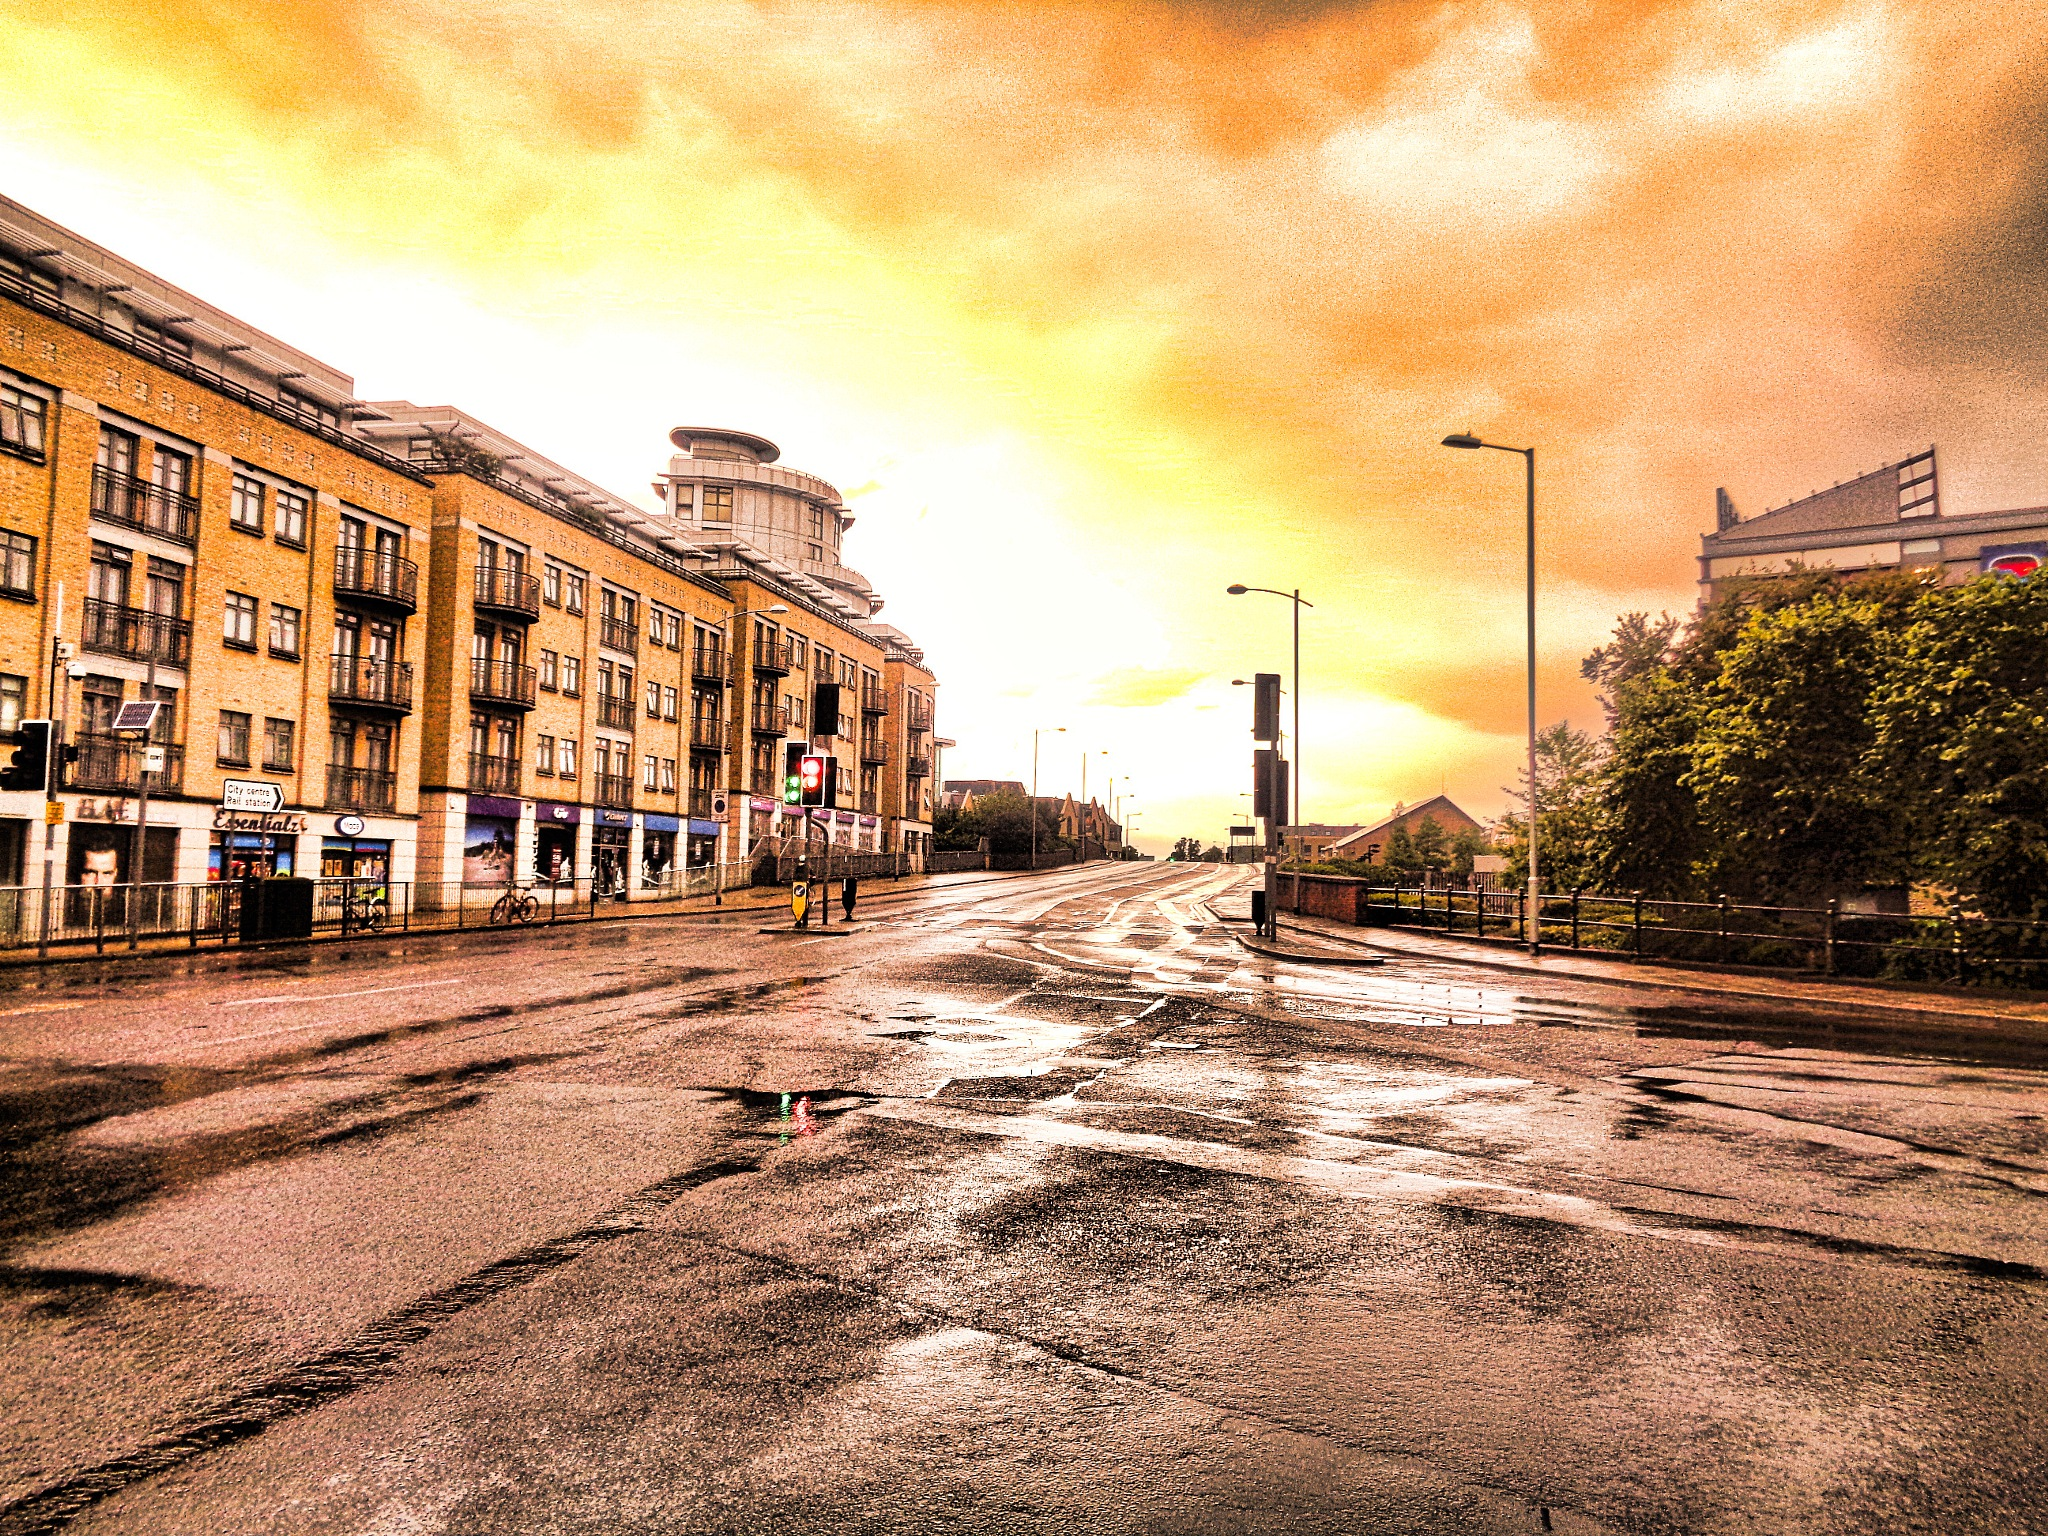 The Road by Simon Hill